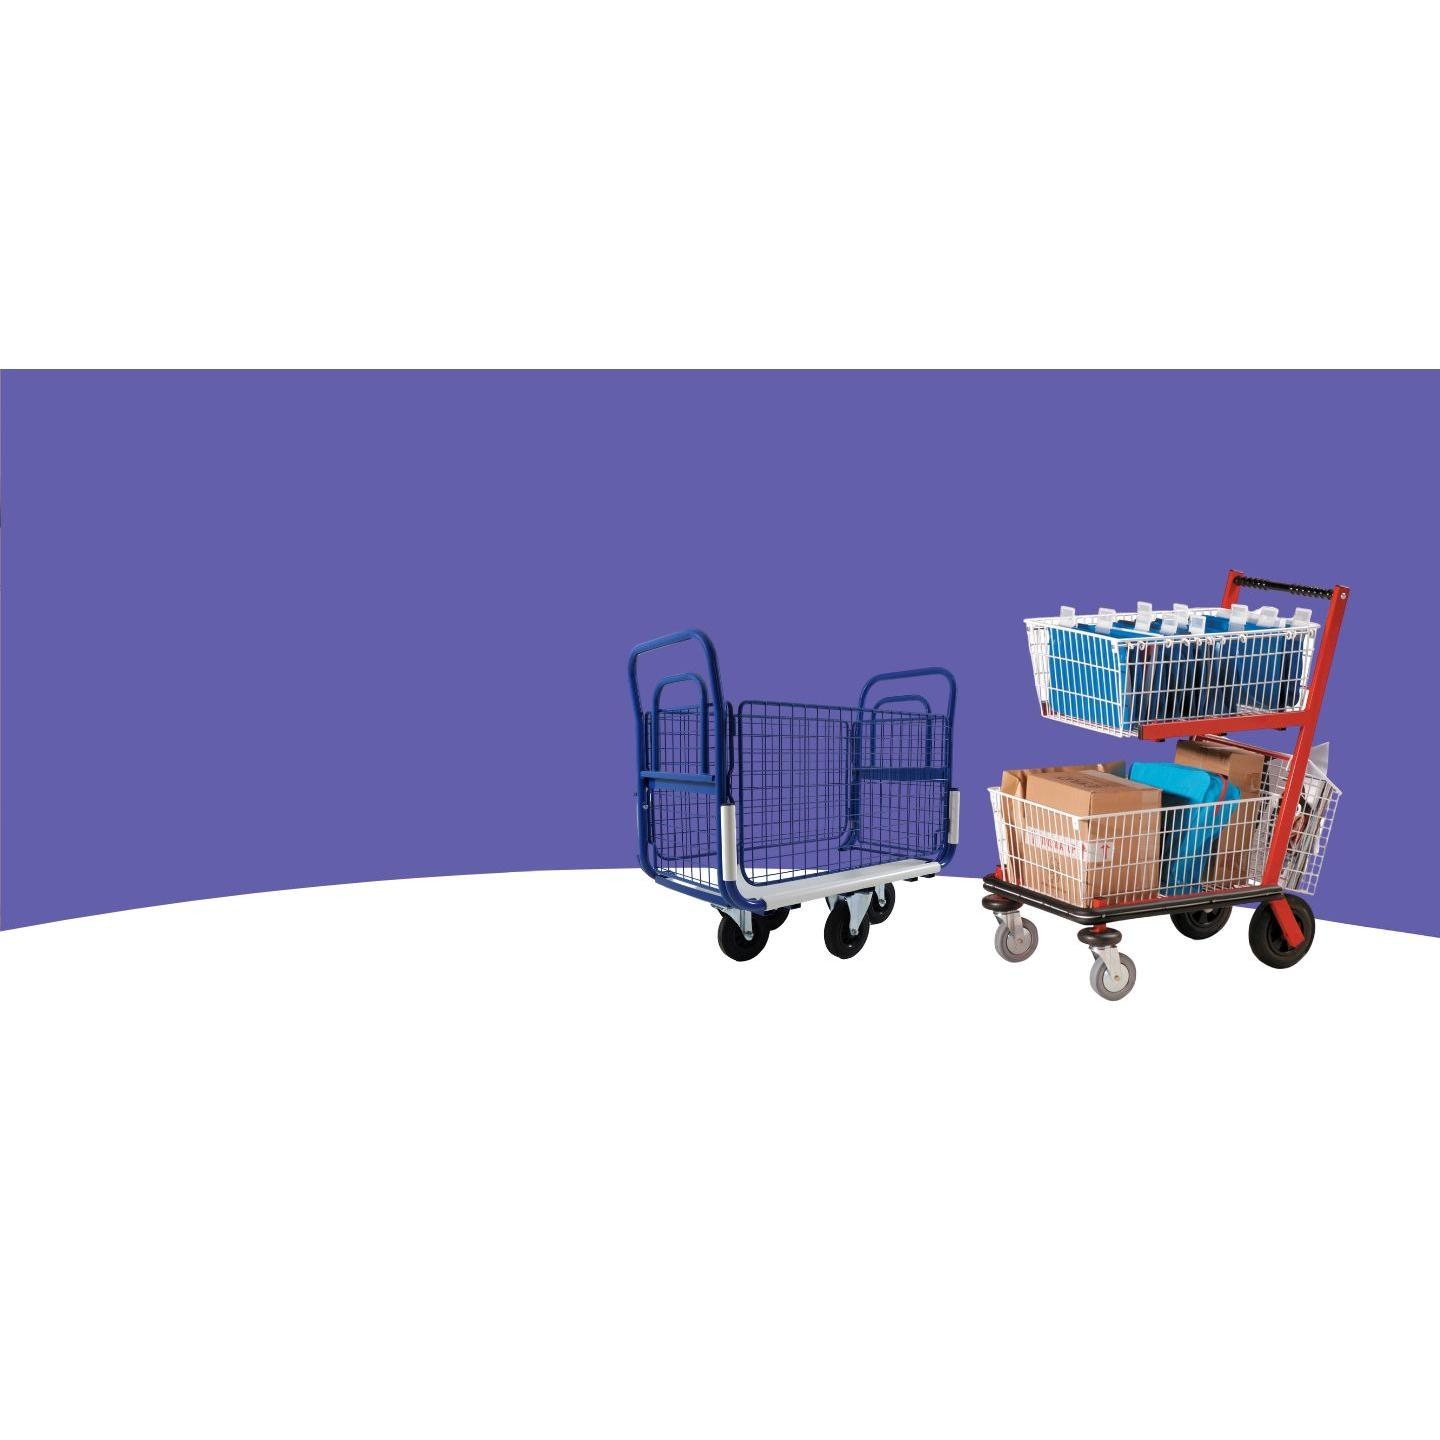 envorsort mailing trolleys for mailrooms